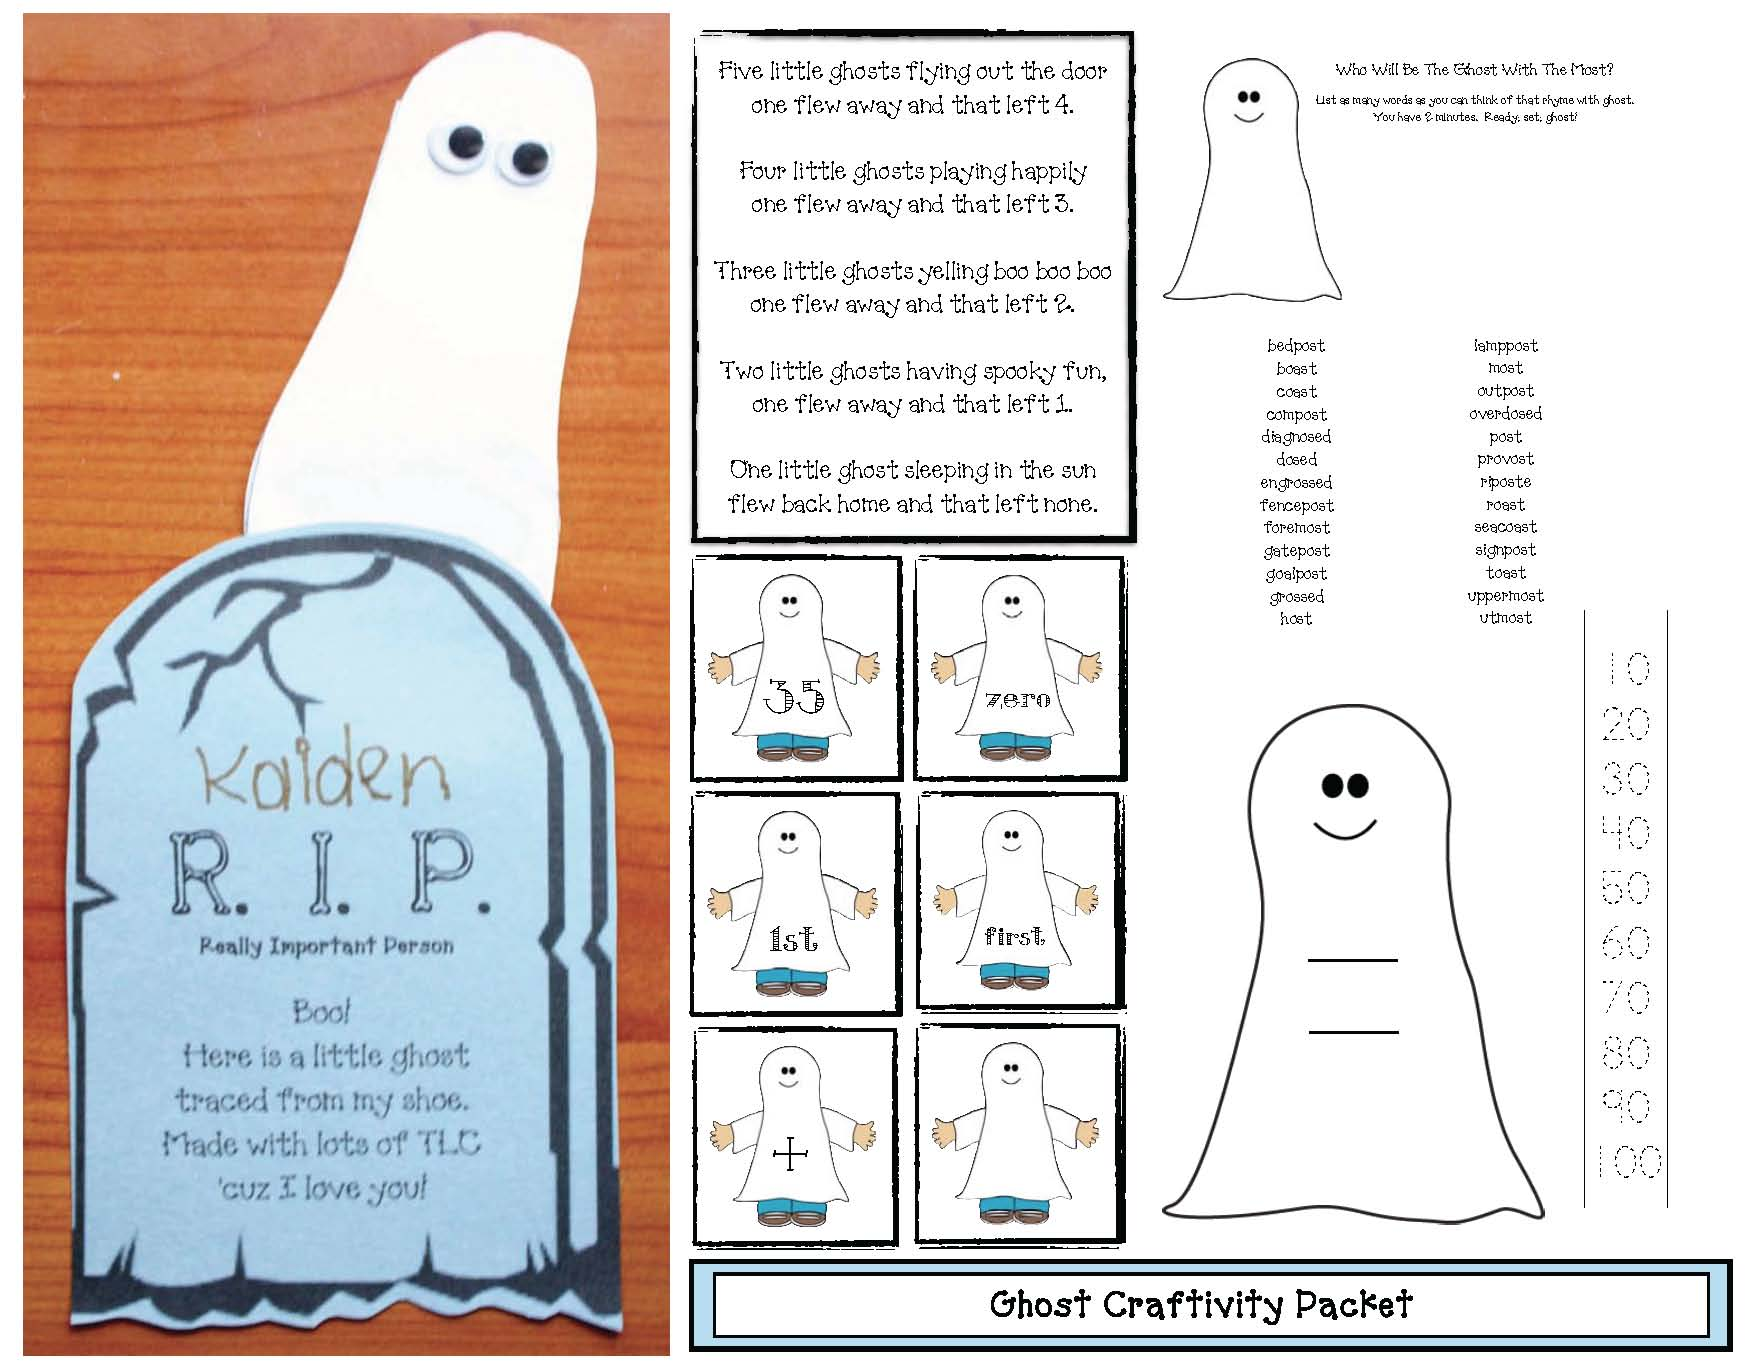 halloween activities, ghost crafts, ghost activities, words that rhyme with ghost, halloween crafts, halloween math activities, math games, ghost games, halloween games, number word activities, numbskull activities, candy bones math, candy bones graph, candy bones activities, free number cards